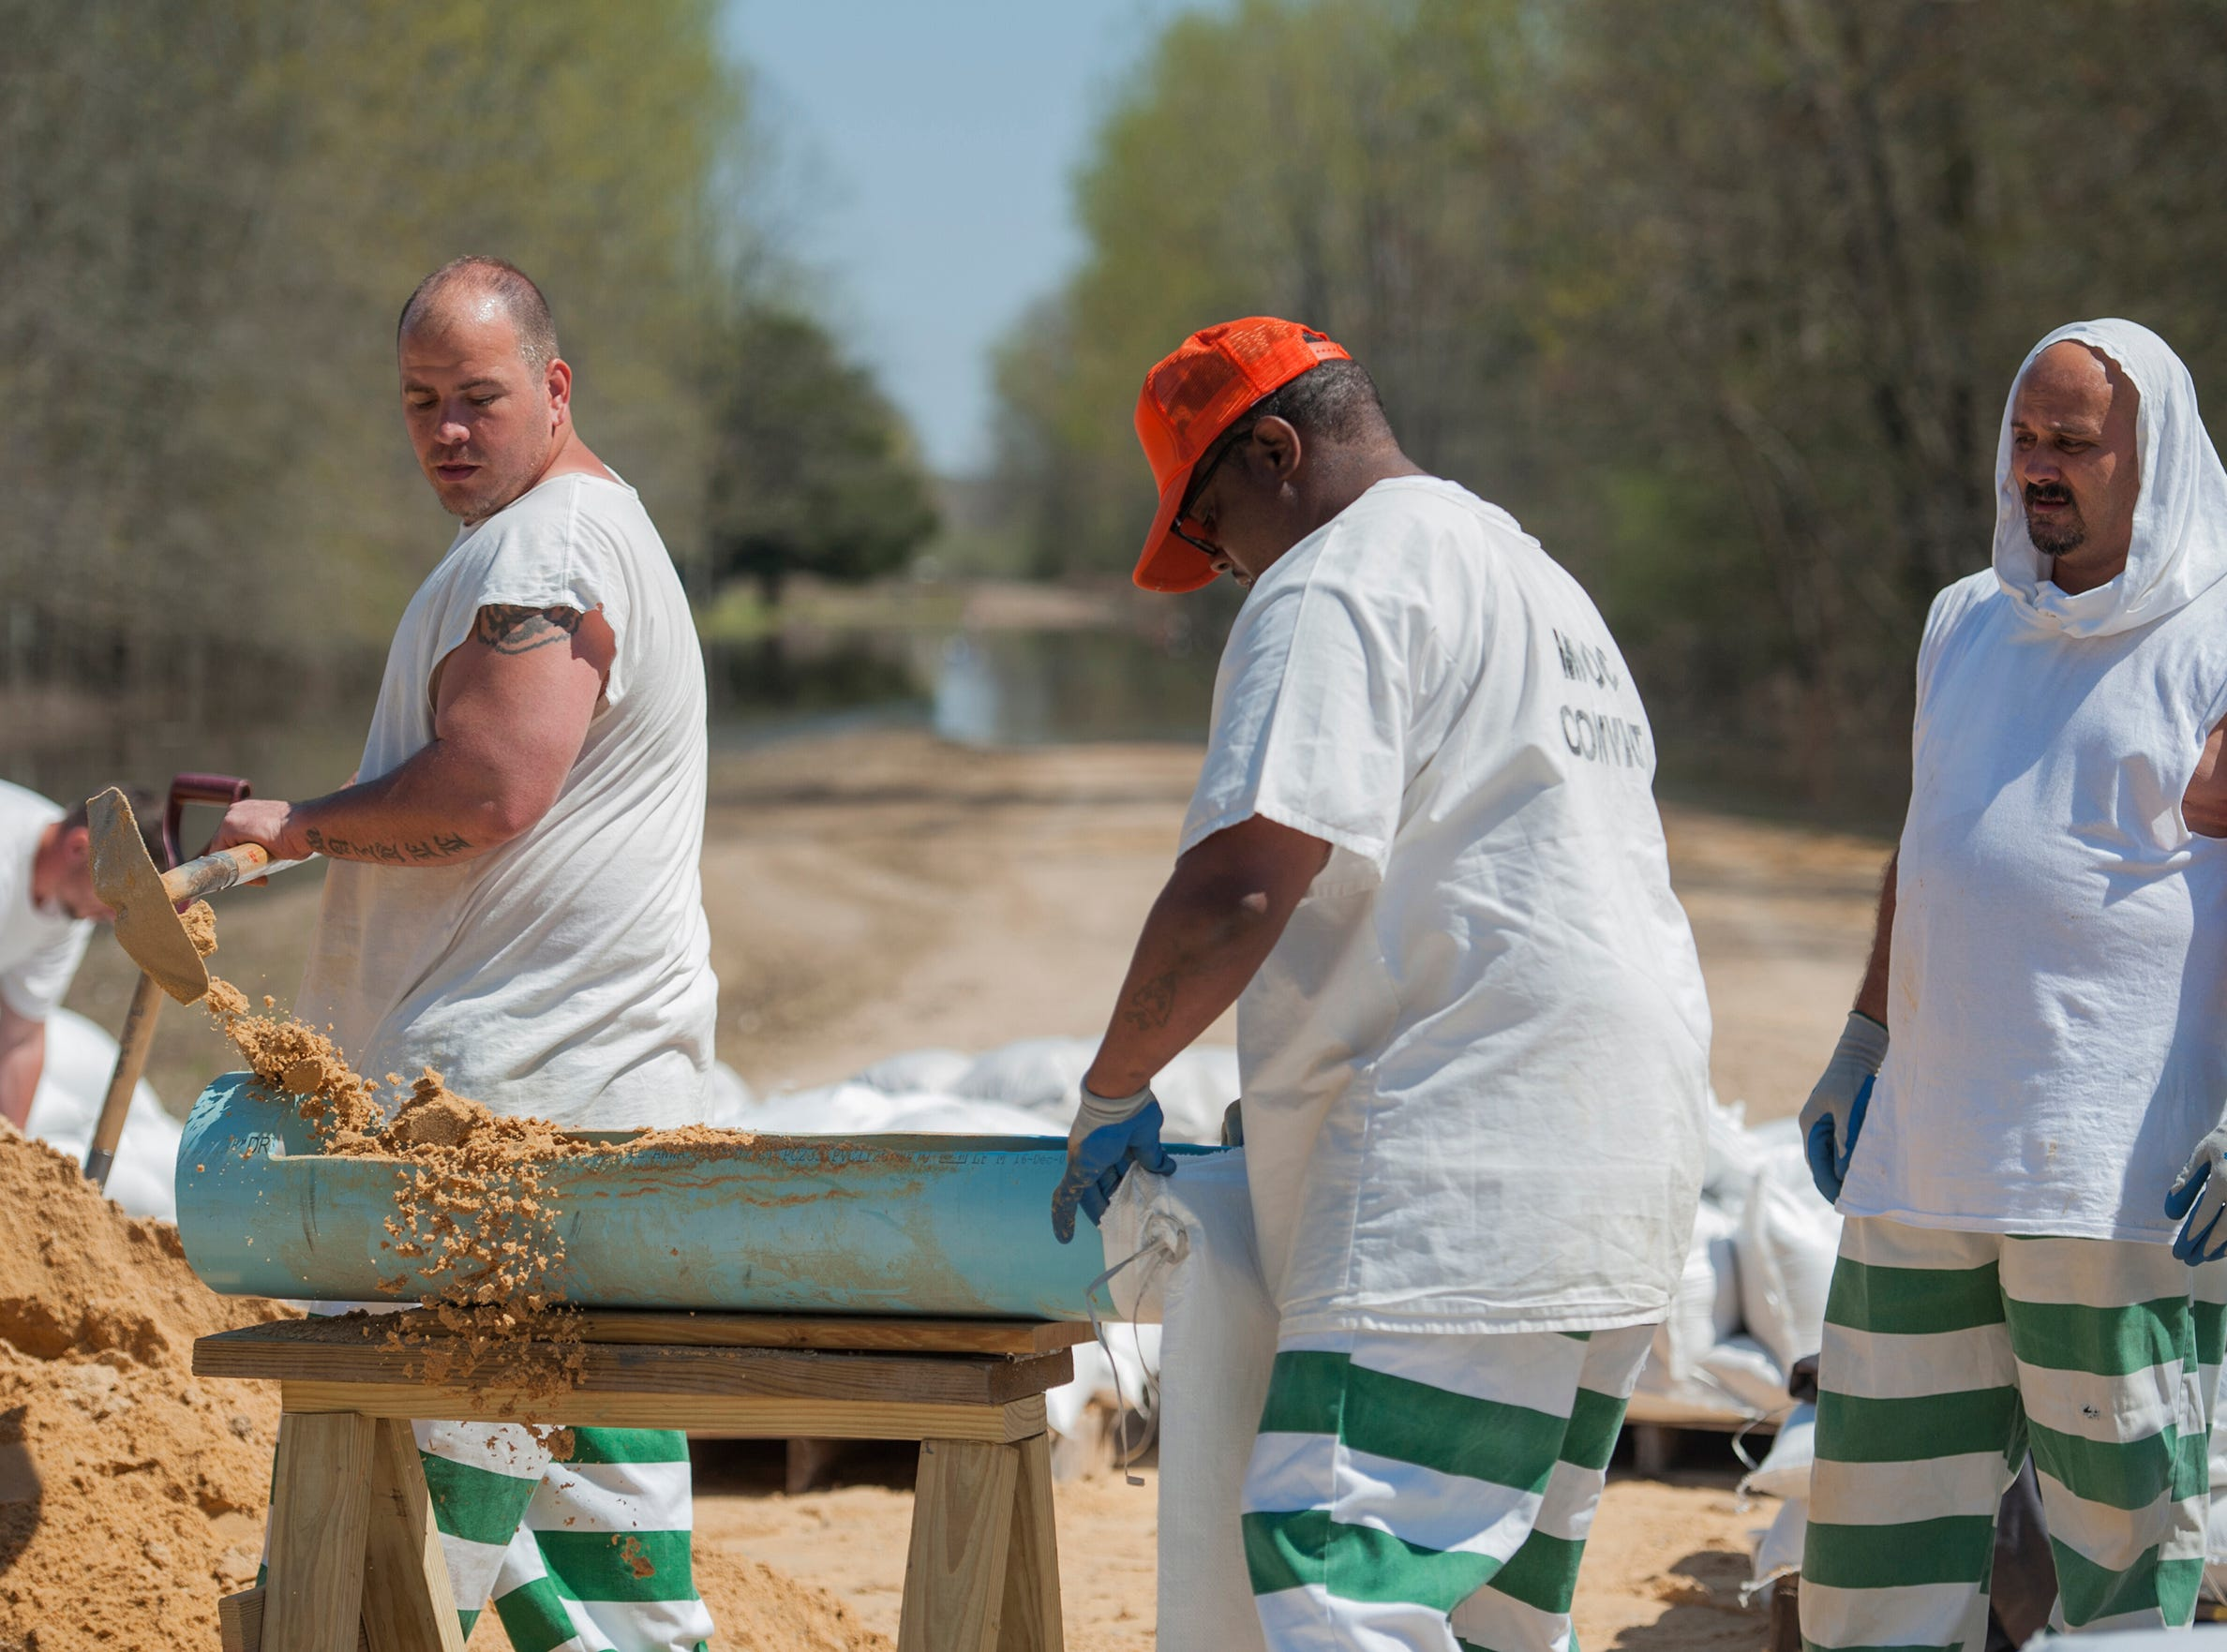 State inmates, residing in the Issaquena County Correctional Facility, fill sandbags to help battle flooding in the county.